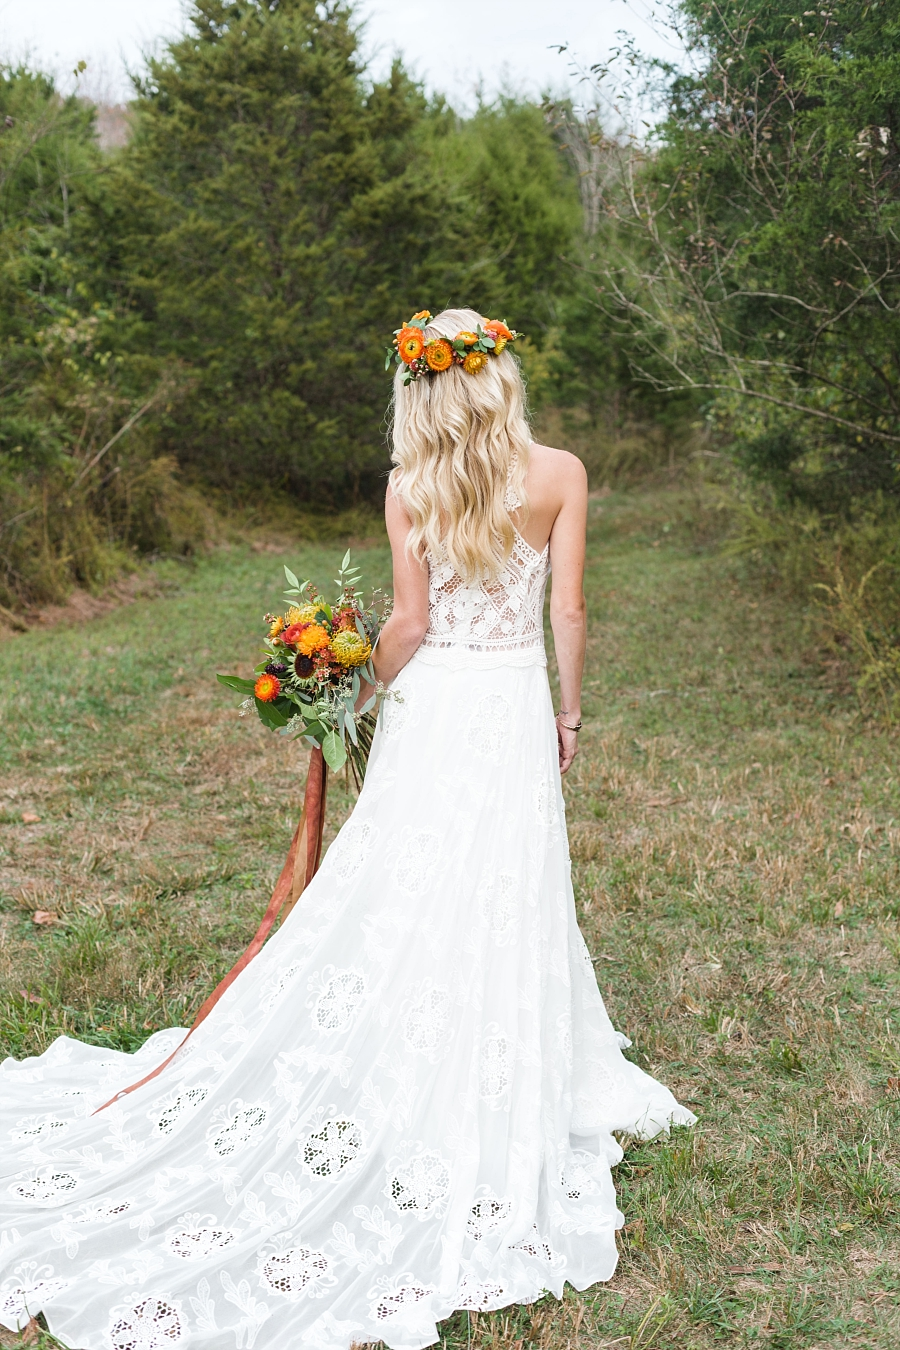 Stacy-Anderson-Photography-Cedarwood-Weddings-Nashville-Destination-Wedding-Photographer_0059.jpg